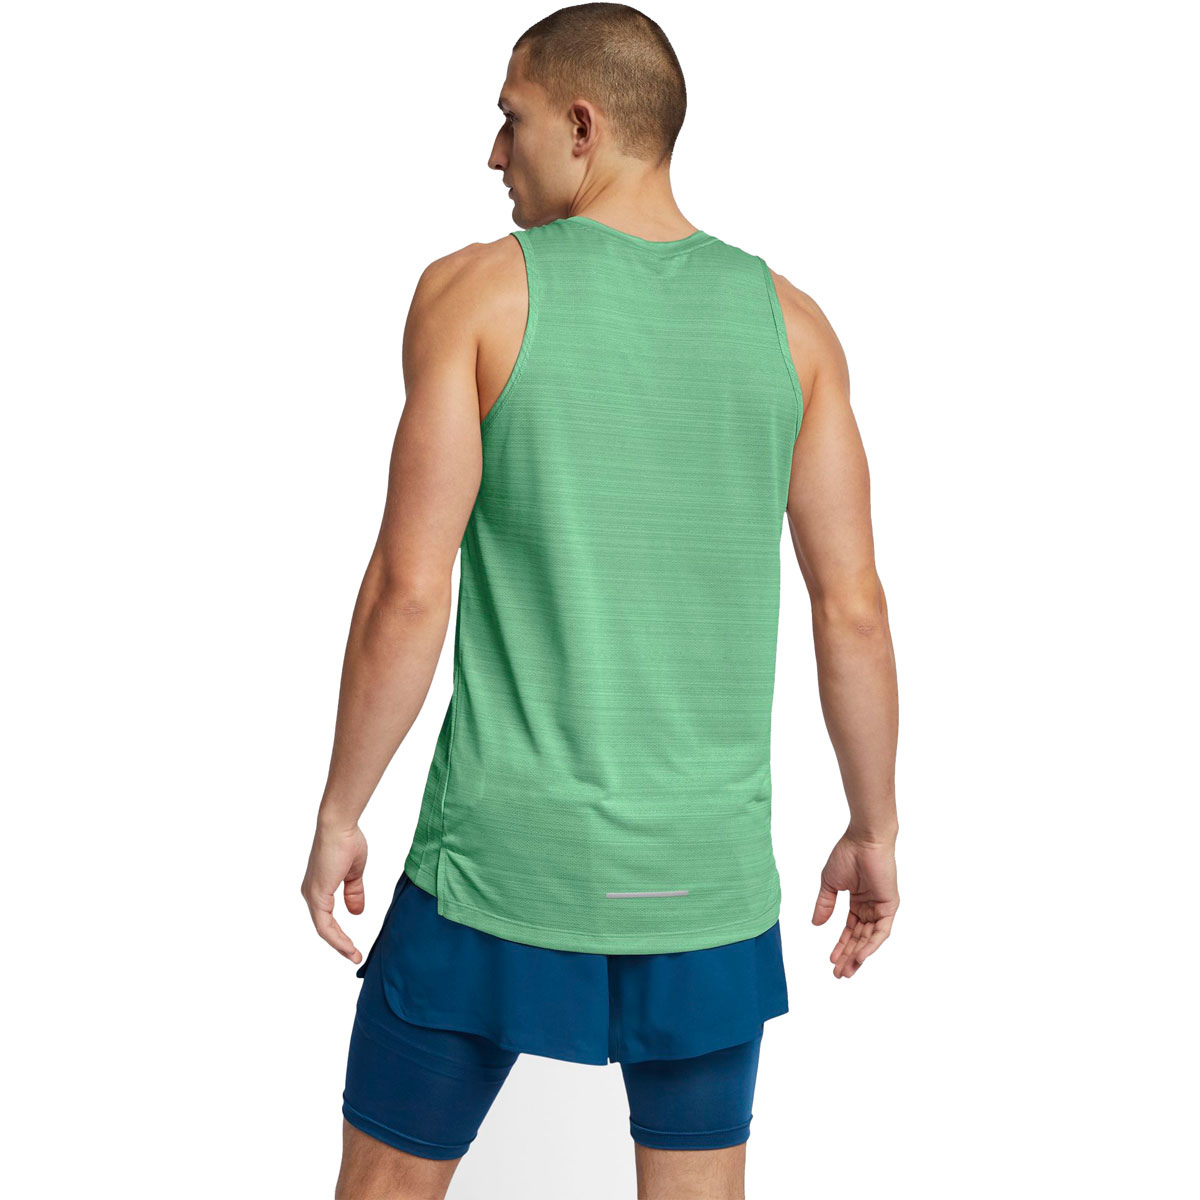 Men's Nike Dri-FIT Miler Running Tank - Color: Vapor Green/Htr/Reflective Silver - Size: S, Vapor Green/Heather/Reflective Silver, large, image 2